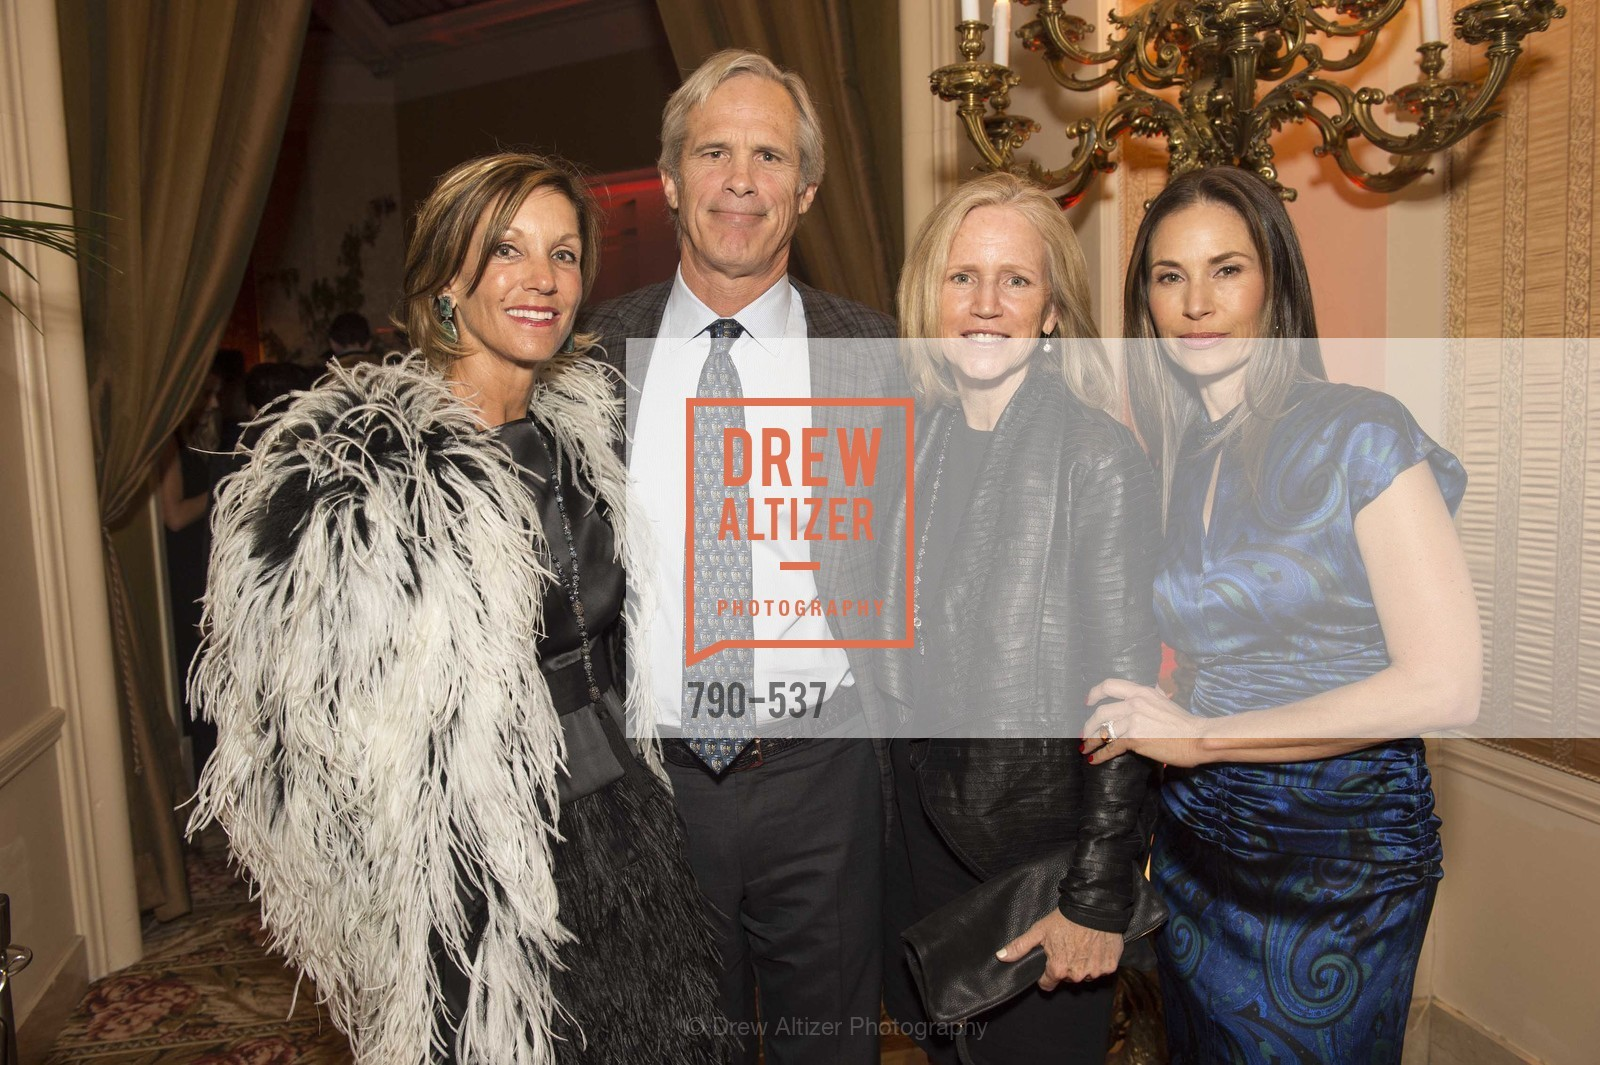 Pamela Rosenkrans, Peter Rosenkrans, Cindy Shove, Patty Rosenfeld, TOP OF THE MARK'S 75TH Anniversary Party, US, November 6th, 2014,Drew Altizer, Drew Altizer Photography, full-service agency, private events, San Francisco photographer, photographer california